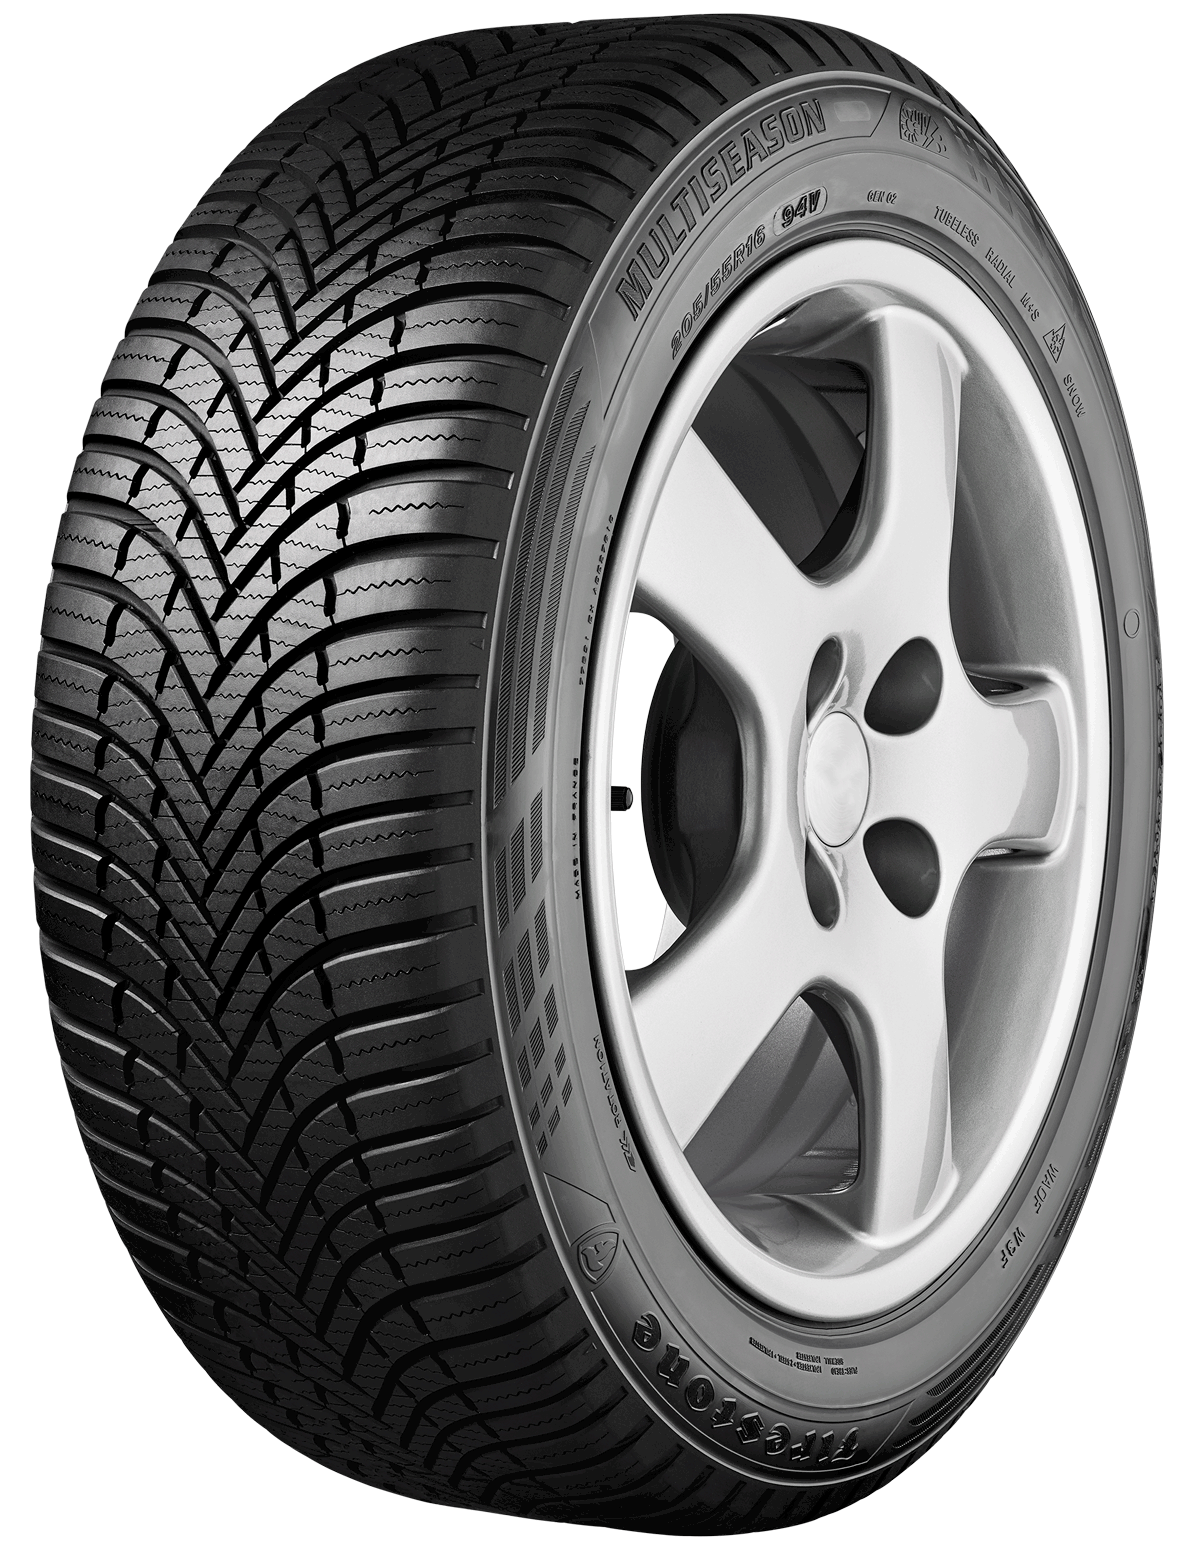 Gomme Nuove Firestone 205/60 R16 96H Multiseasong2 XL M+S pneumatici nuovi All Season